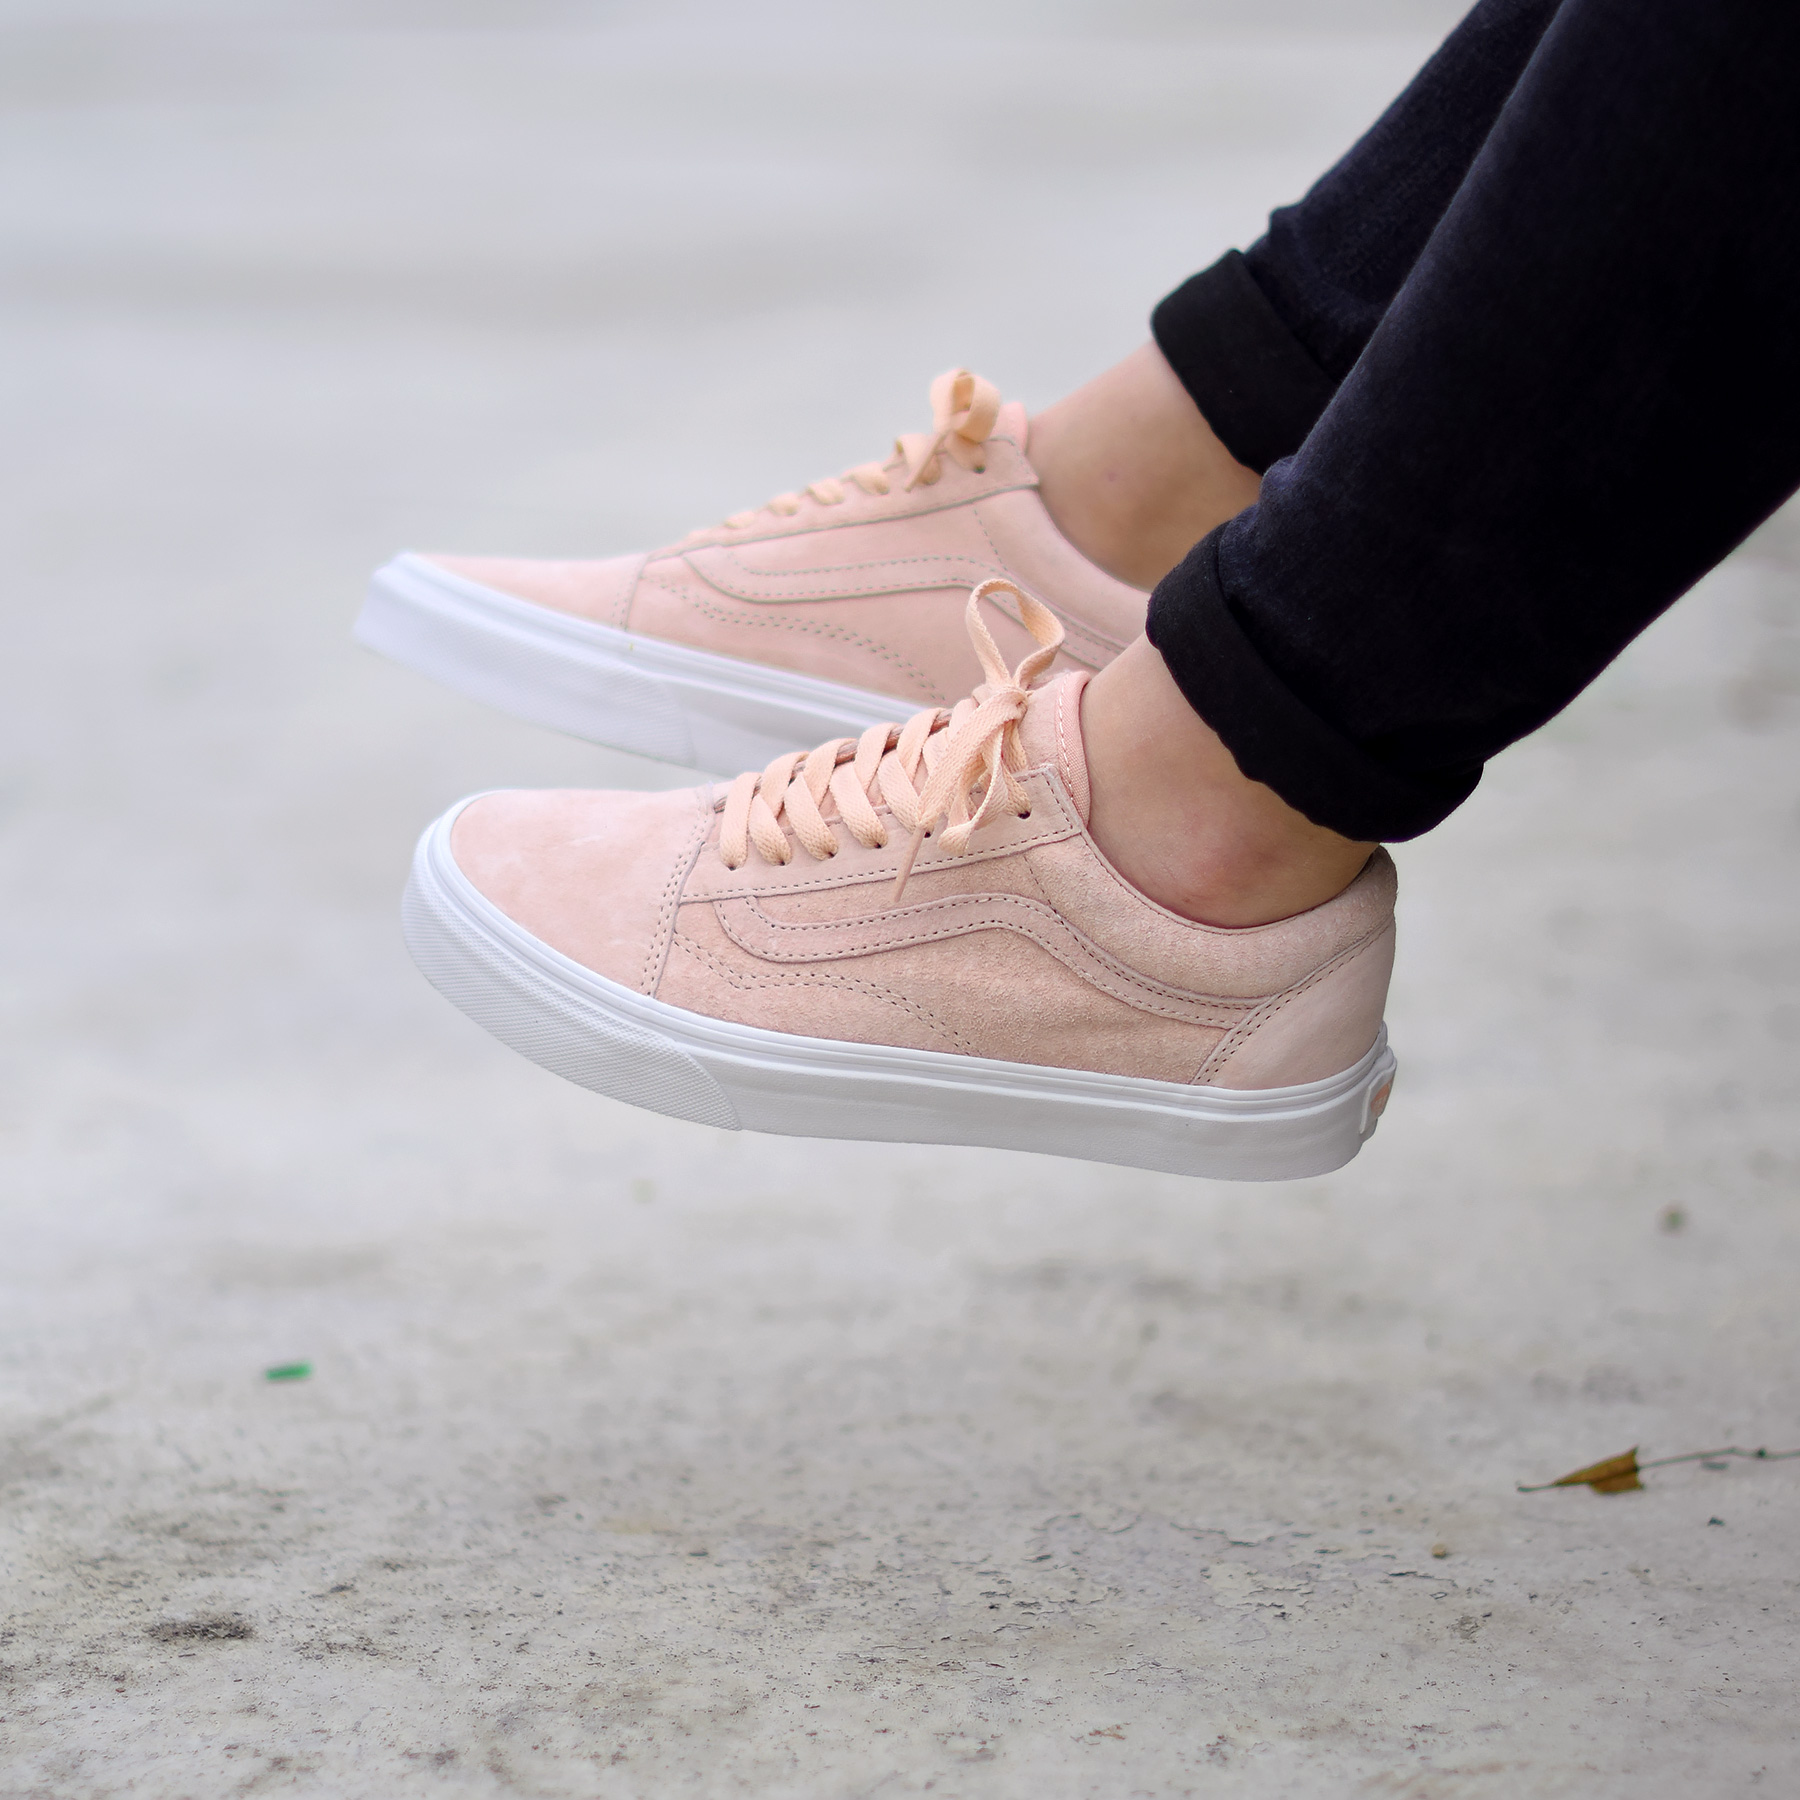 Vans Old Skool Pig Suede Spanish Villa